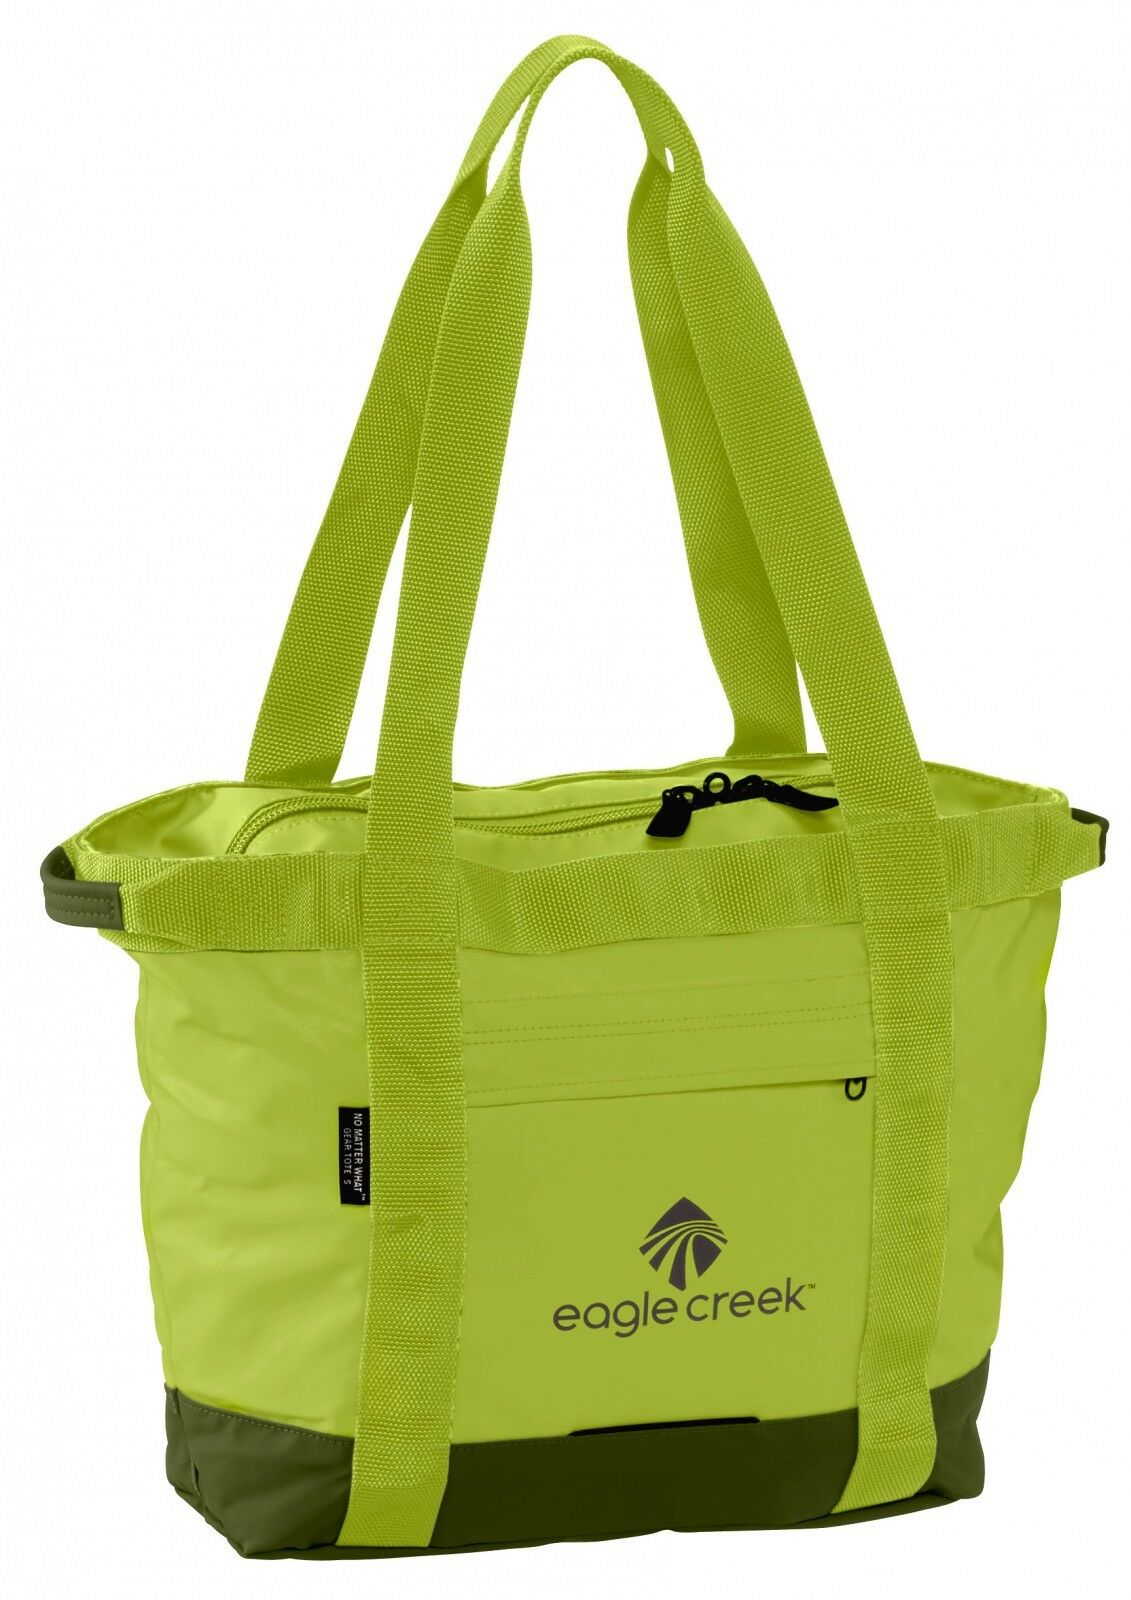 Eagle creek No Matter What Gear Tote S Tasche Shopper Schultertasche Strobe green